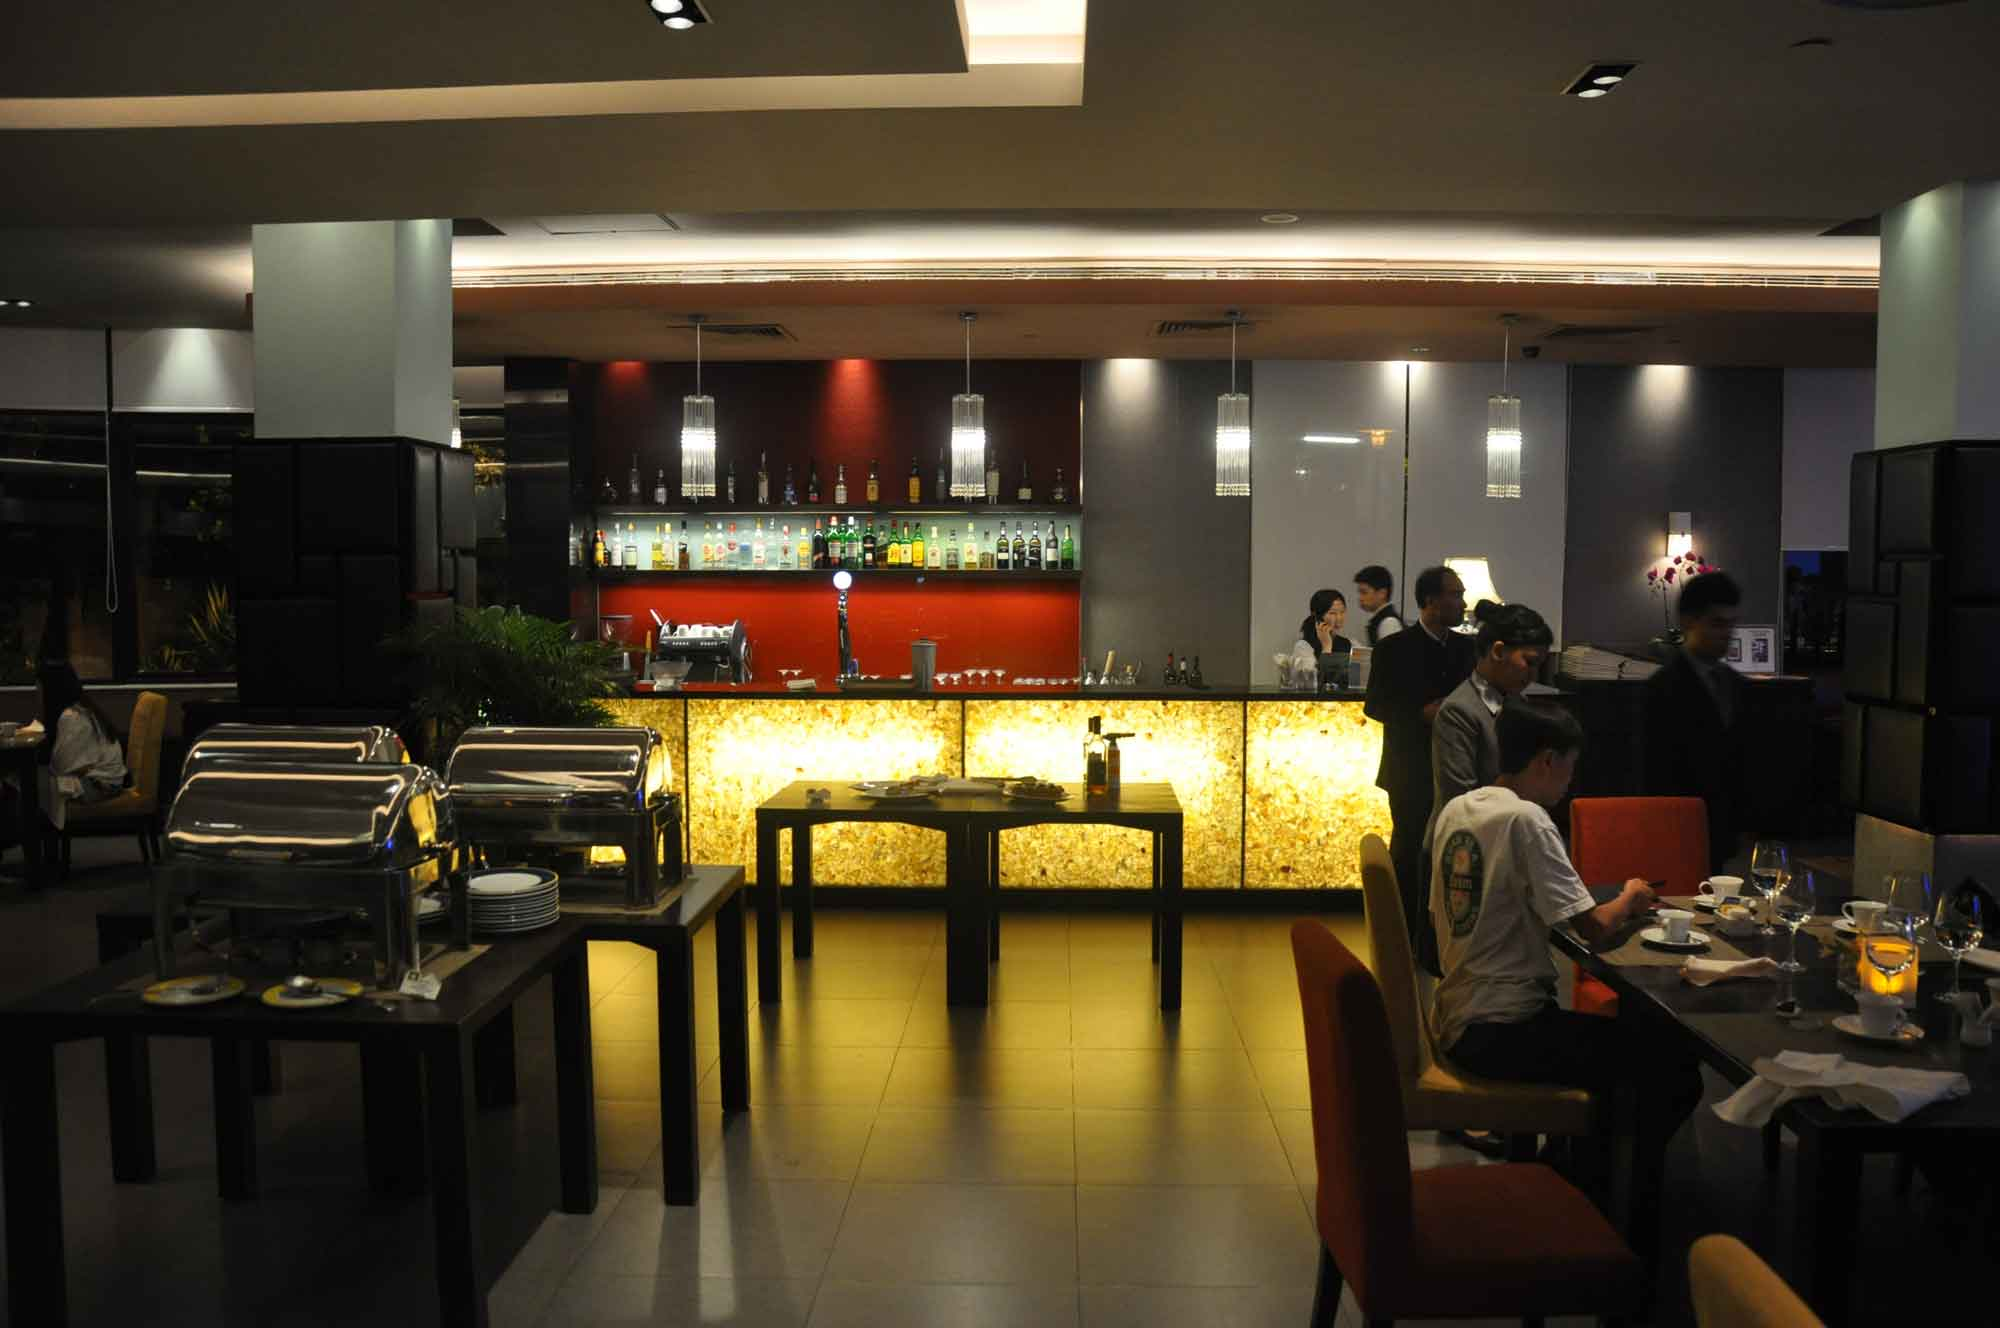 IFT Educational Restaurant Macanese and Portuguese Dinner Buffet seating